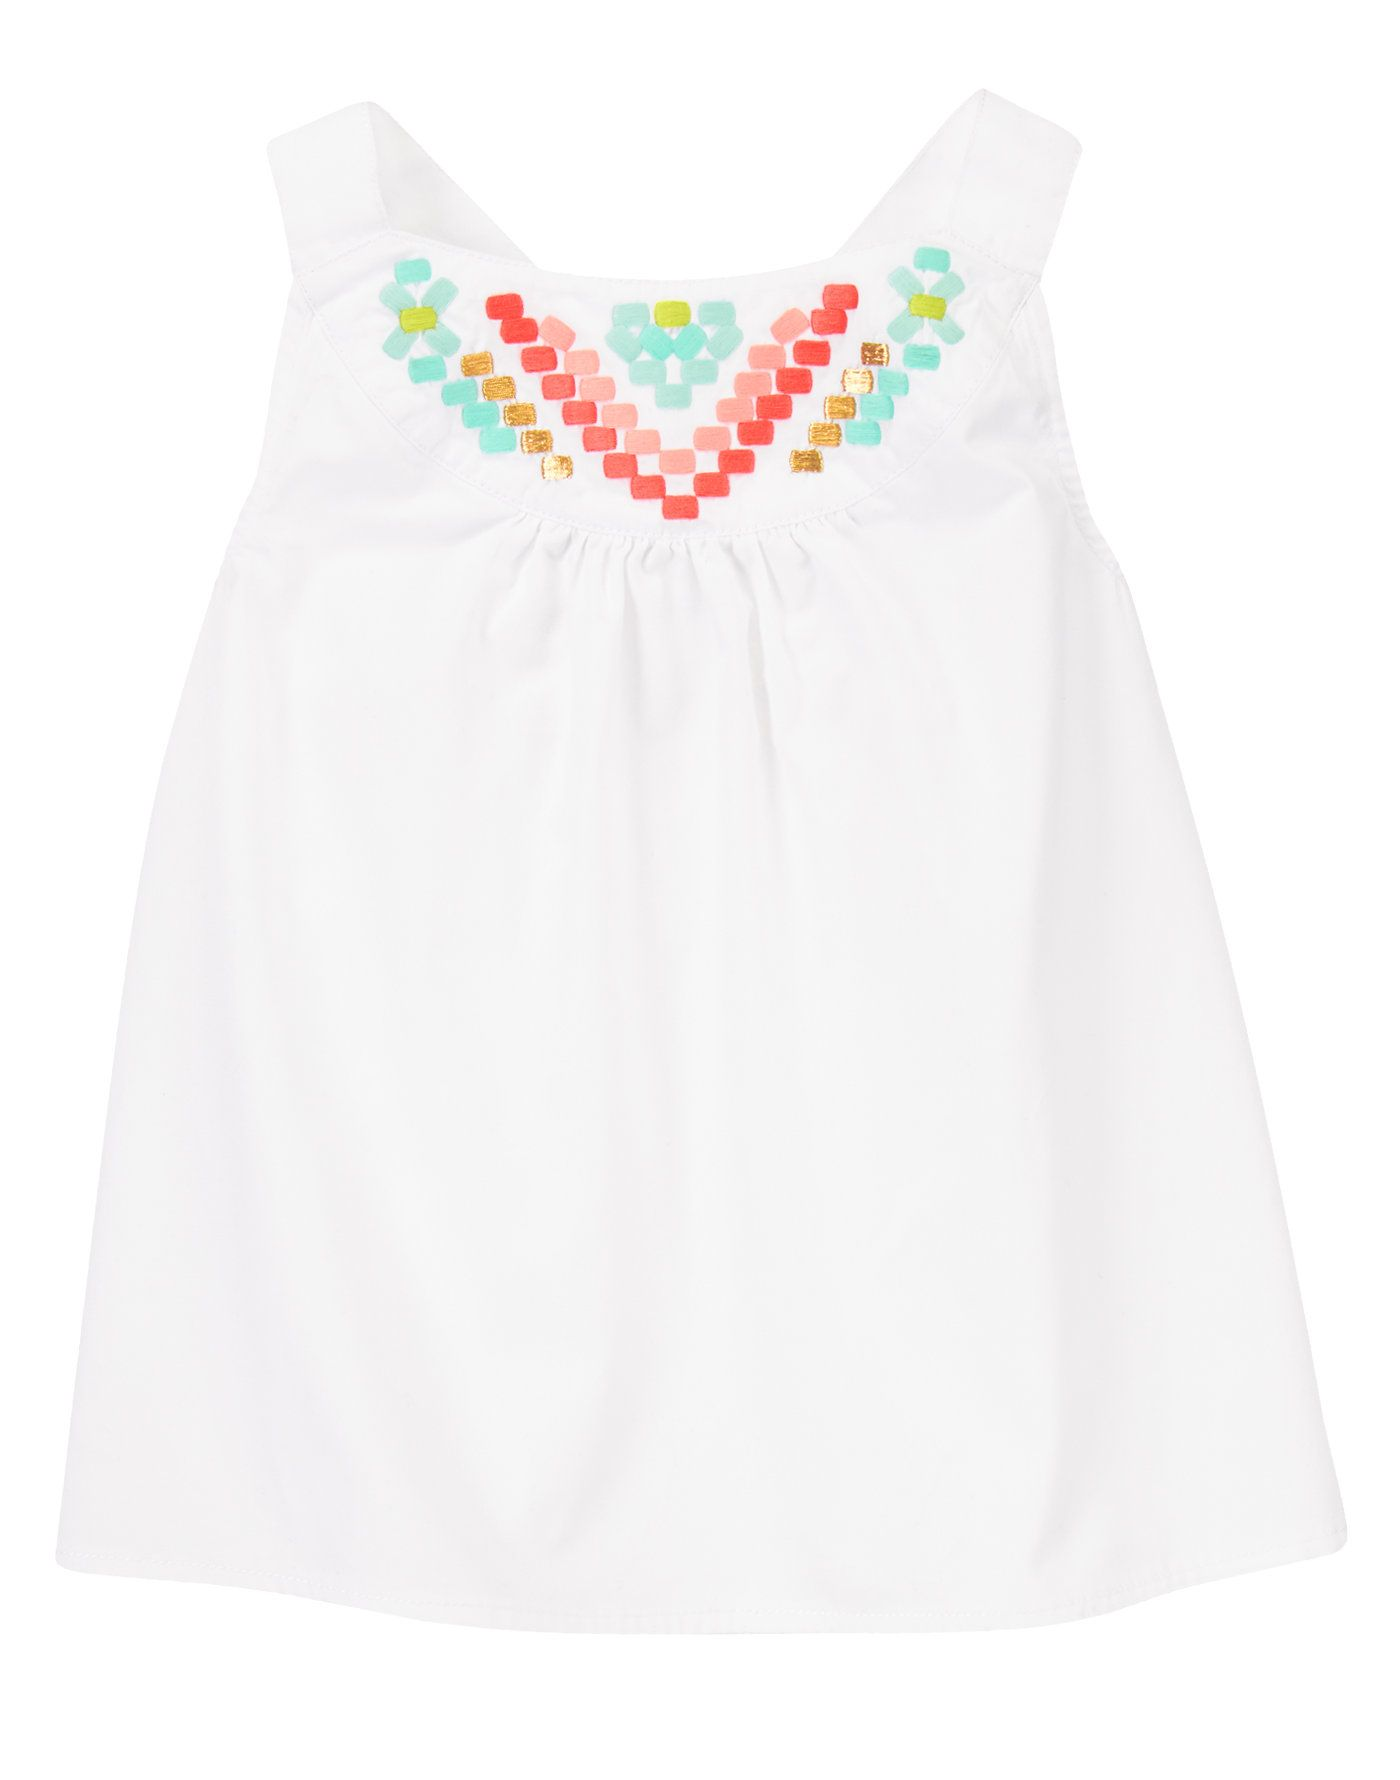 Geo Embroidered Top at Gymboree